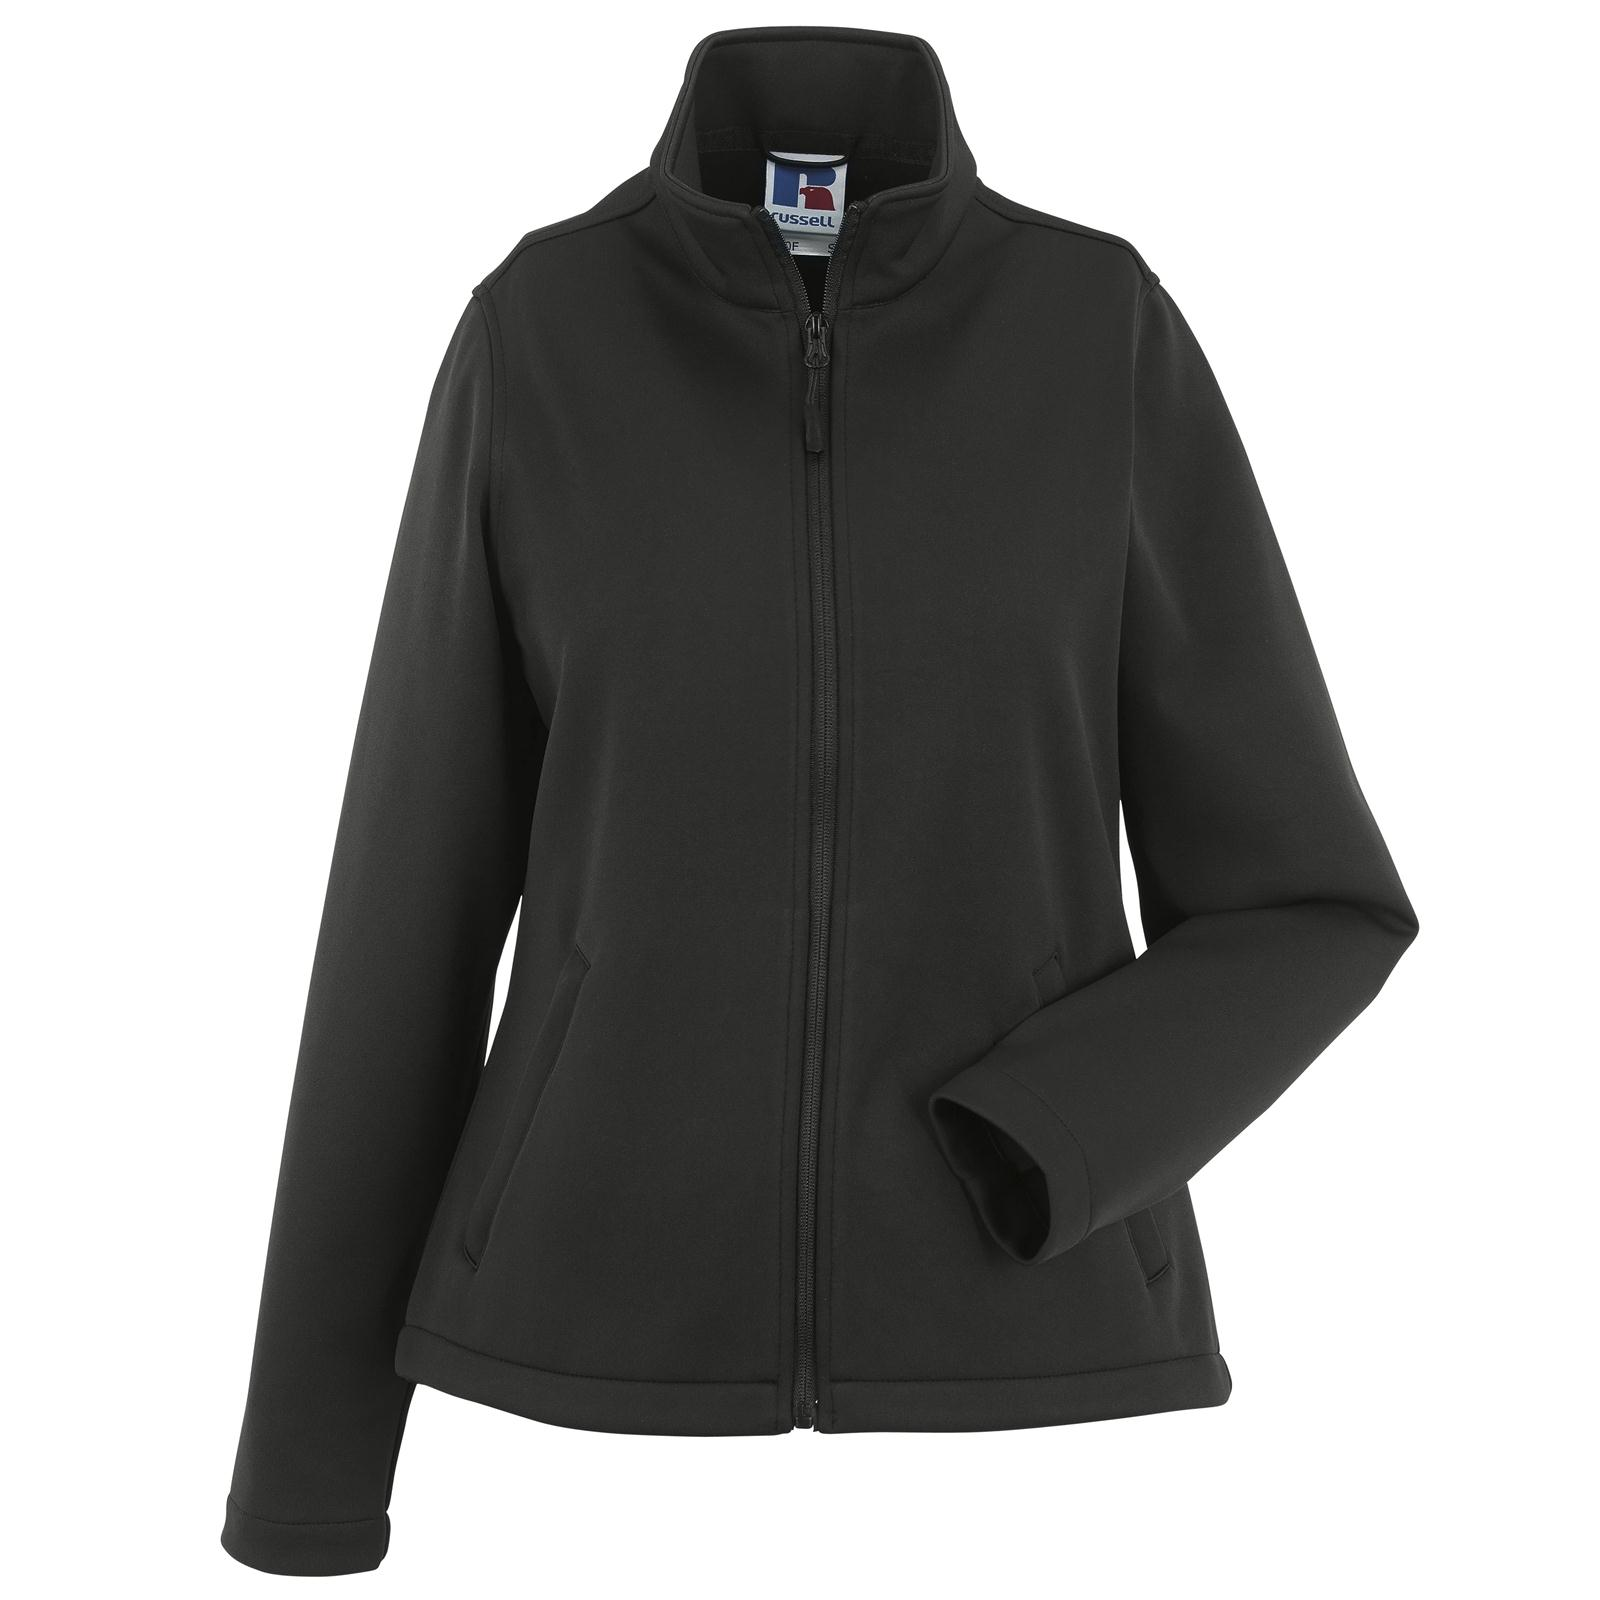 Buy Jackets from the Womens department at Debenhams. You'll find the widest range of Jackets products online and delivered to your door. Shop today! Menu Petite smart blazer Save. Was £ Now £ Maine New England Natural four pocket jacket Save. Was £ Then £ Now.